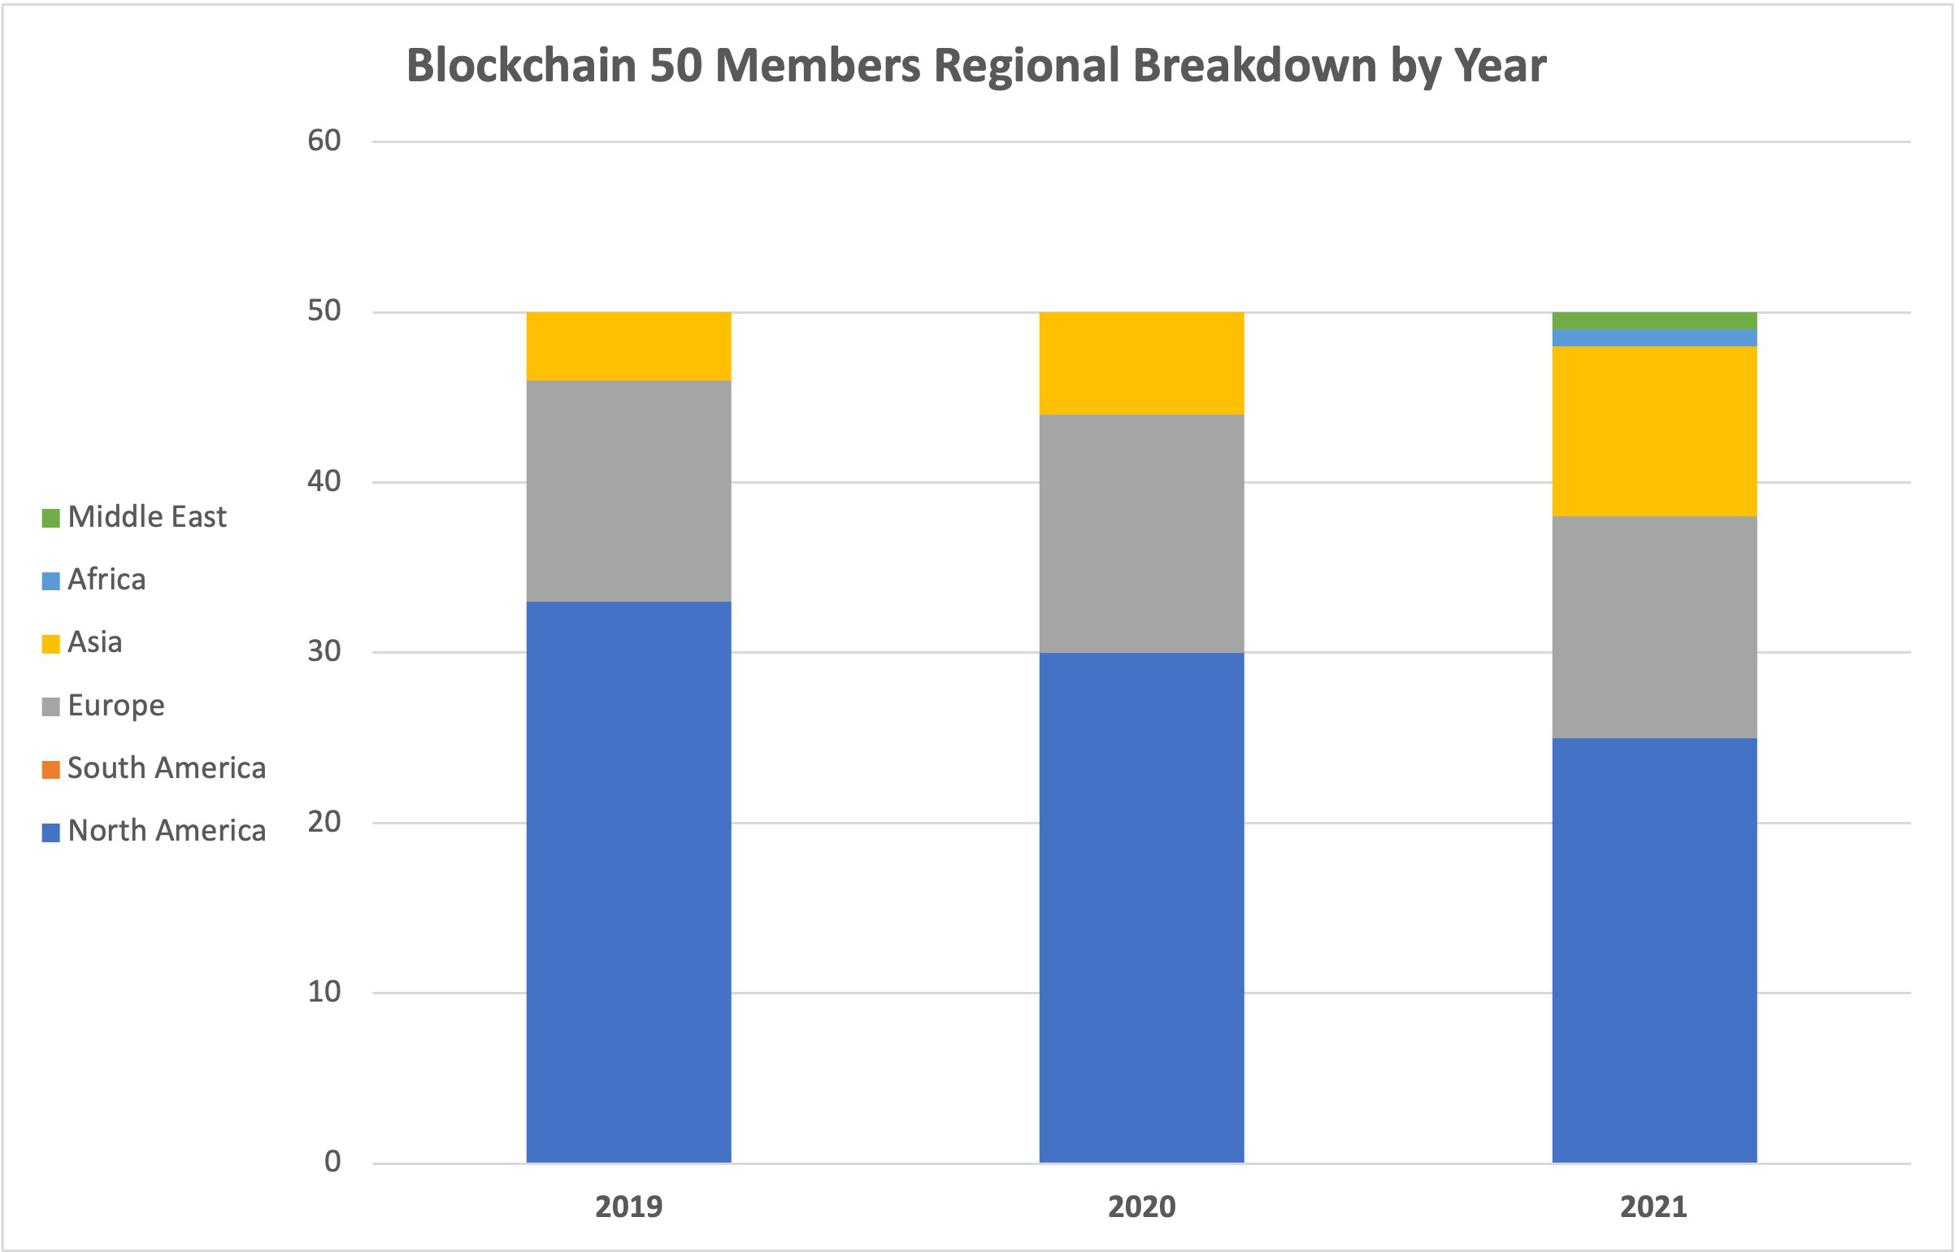 Forbes Blockchain 50 Members Regional Breakdown by Year